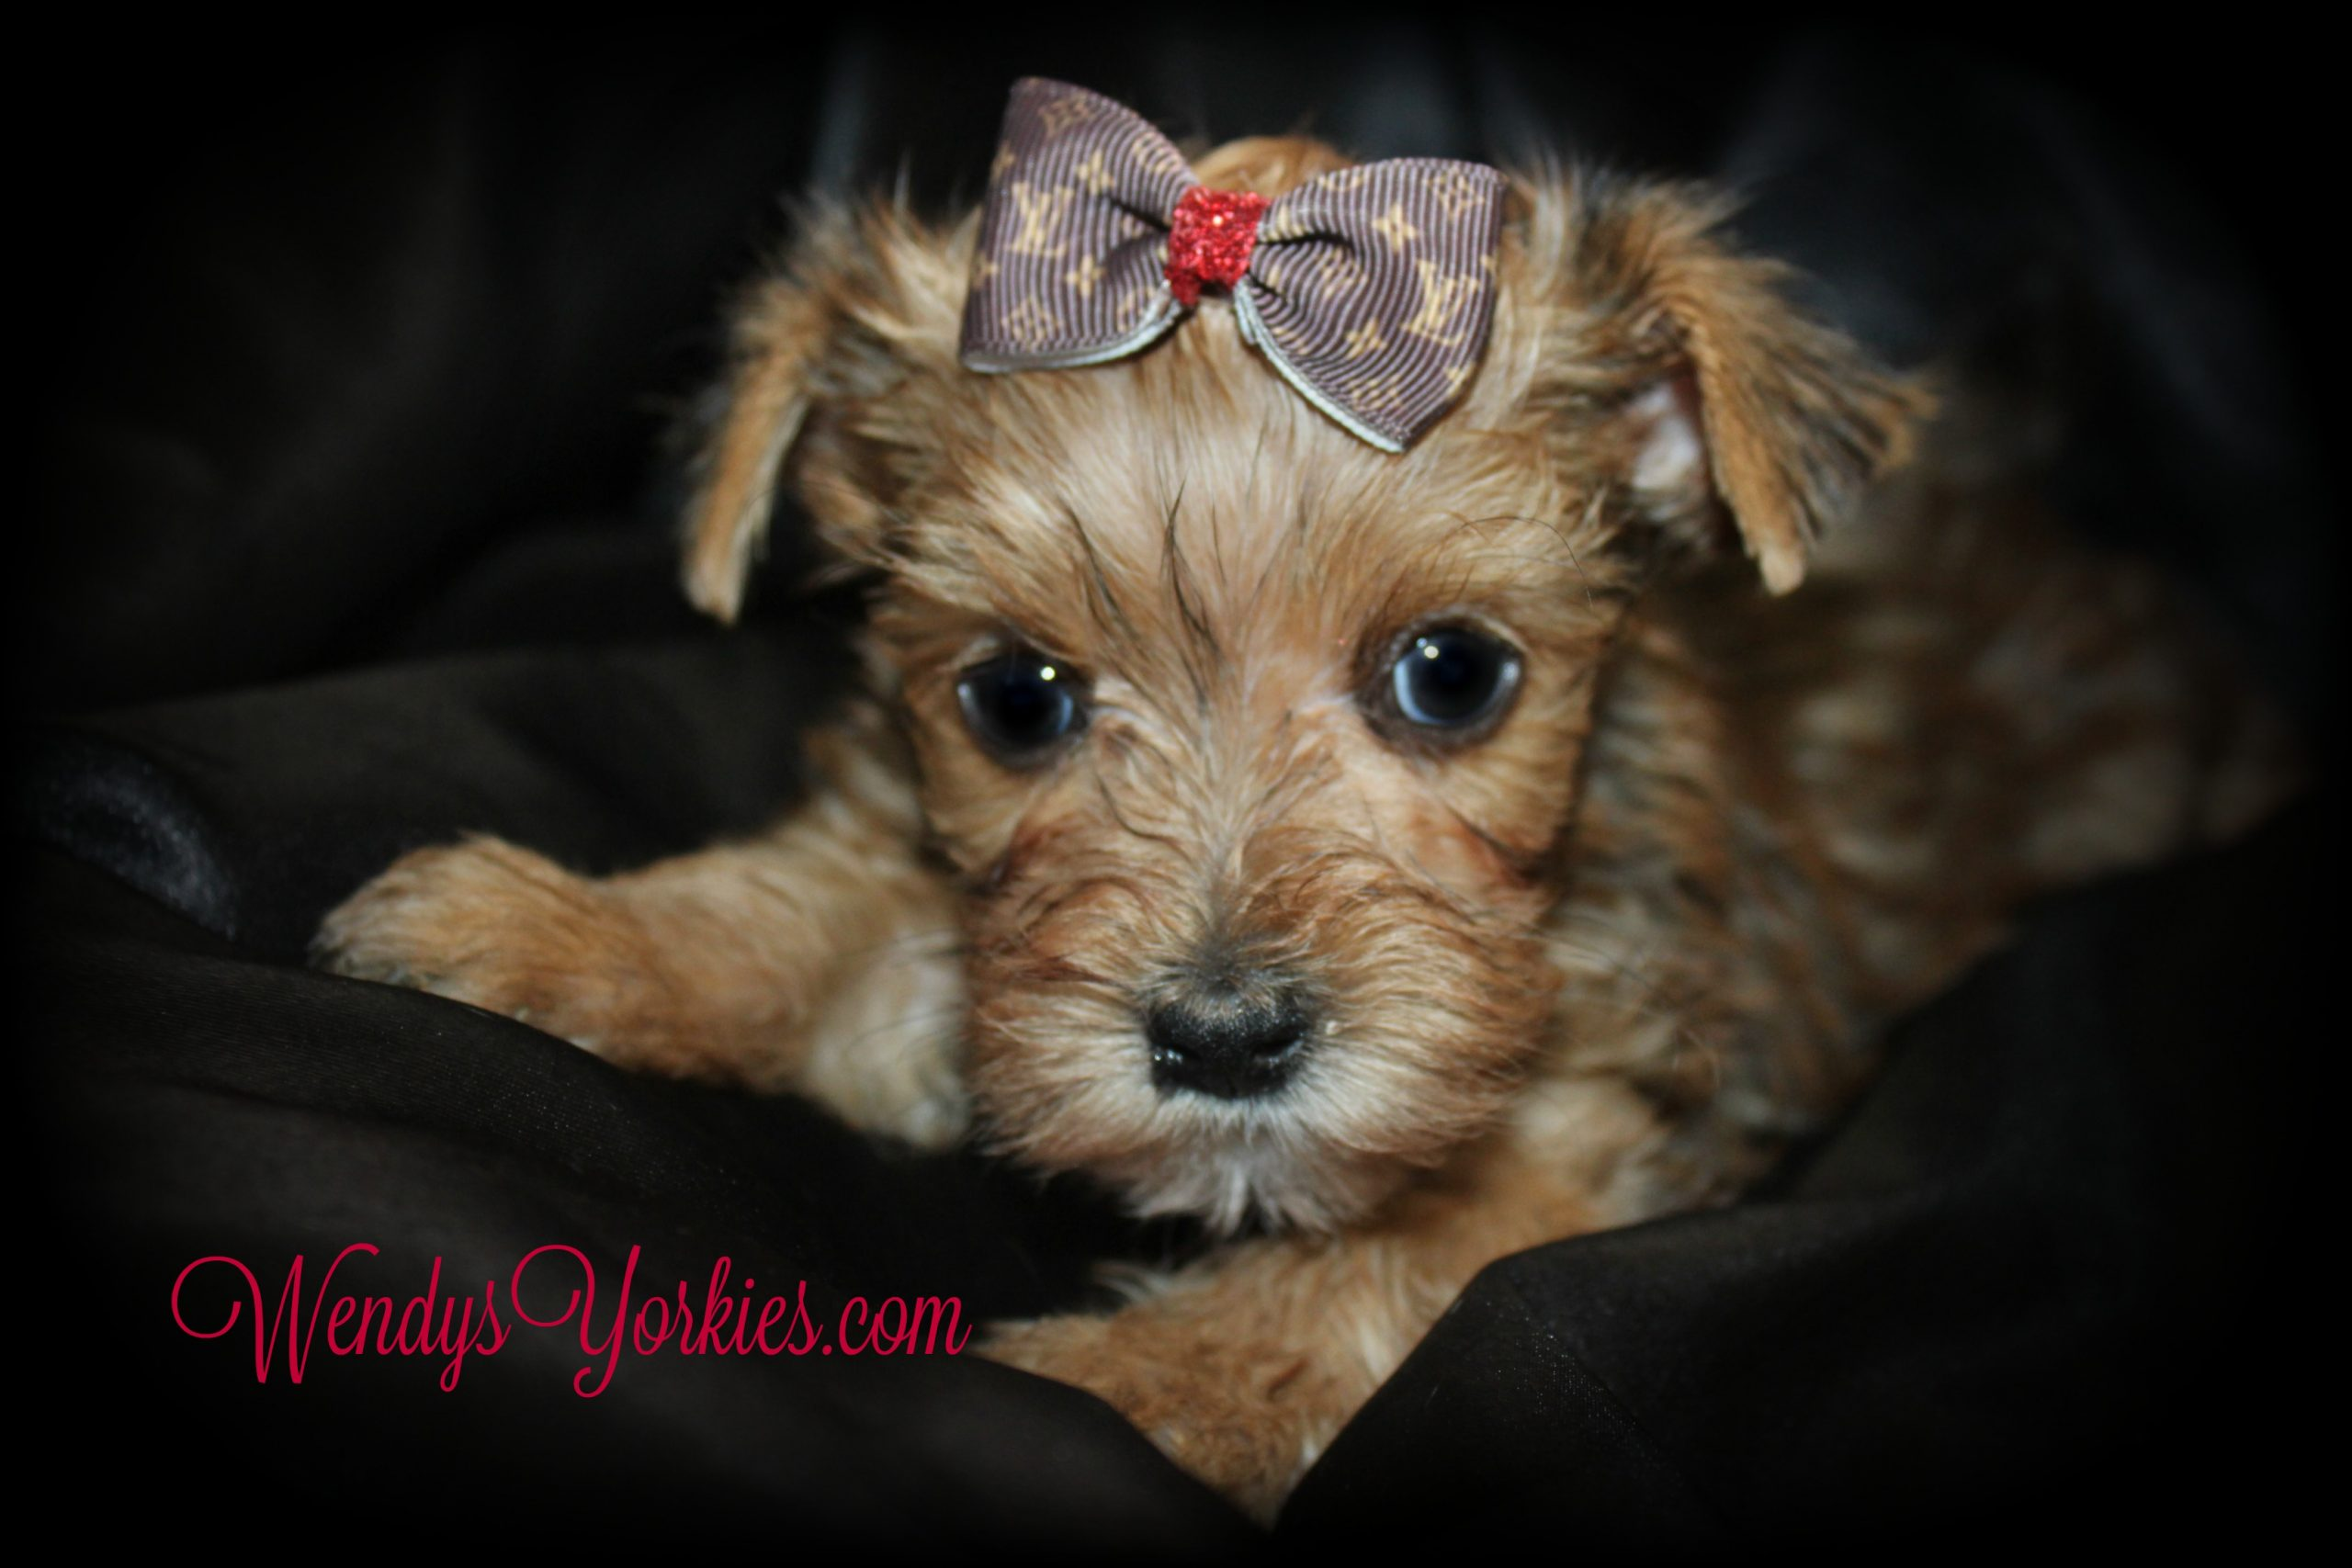 Male YOrkie puppy for sale, Blonde Yorkie puppy, WendysYorkies.com